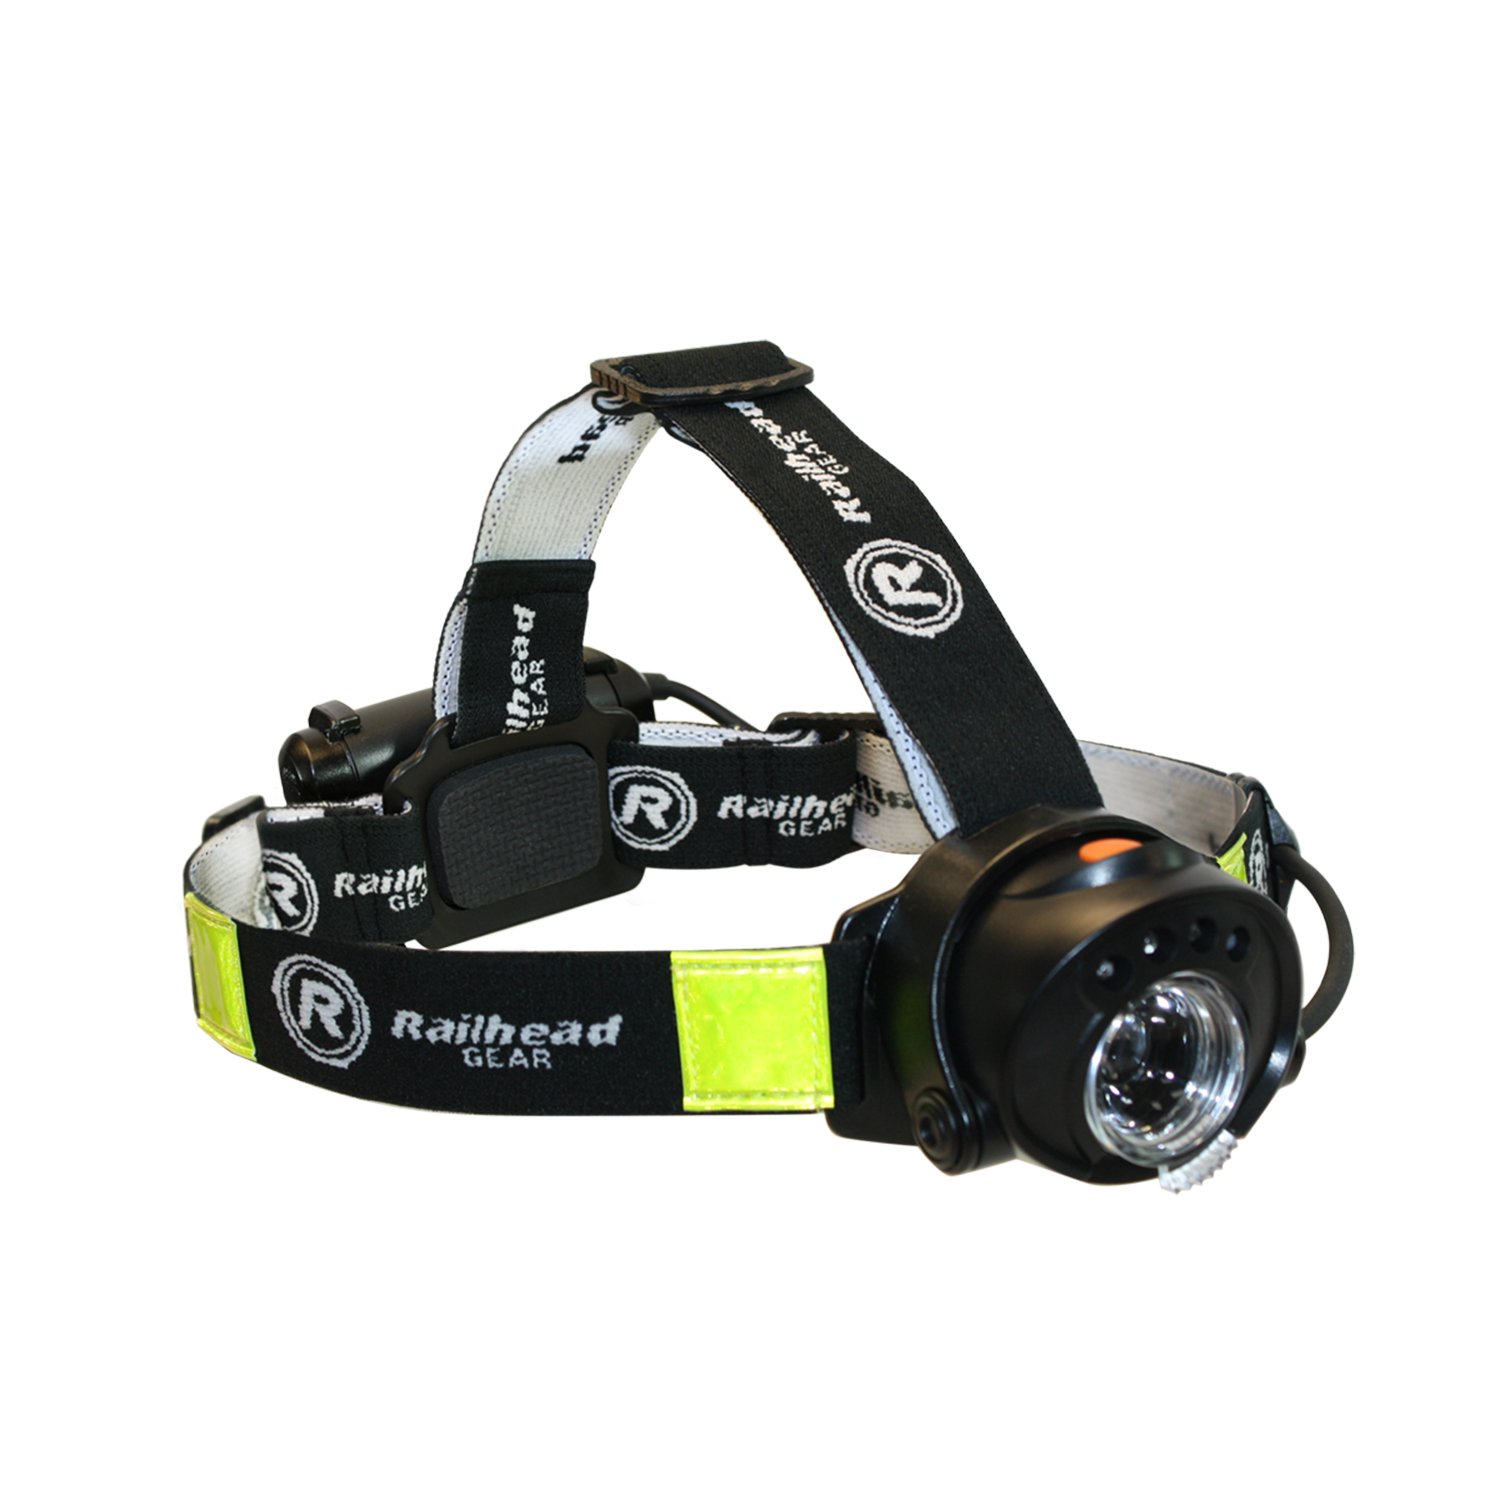 Railhead Gear 450 Lumen Focus Control, Motion Activated LED Headlamp, IPX4 Rated, Battery Pack on Back of Head with Red LED, KE-HLFC185 by Railhead Gear